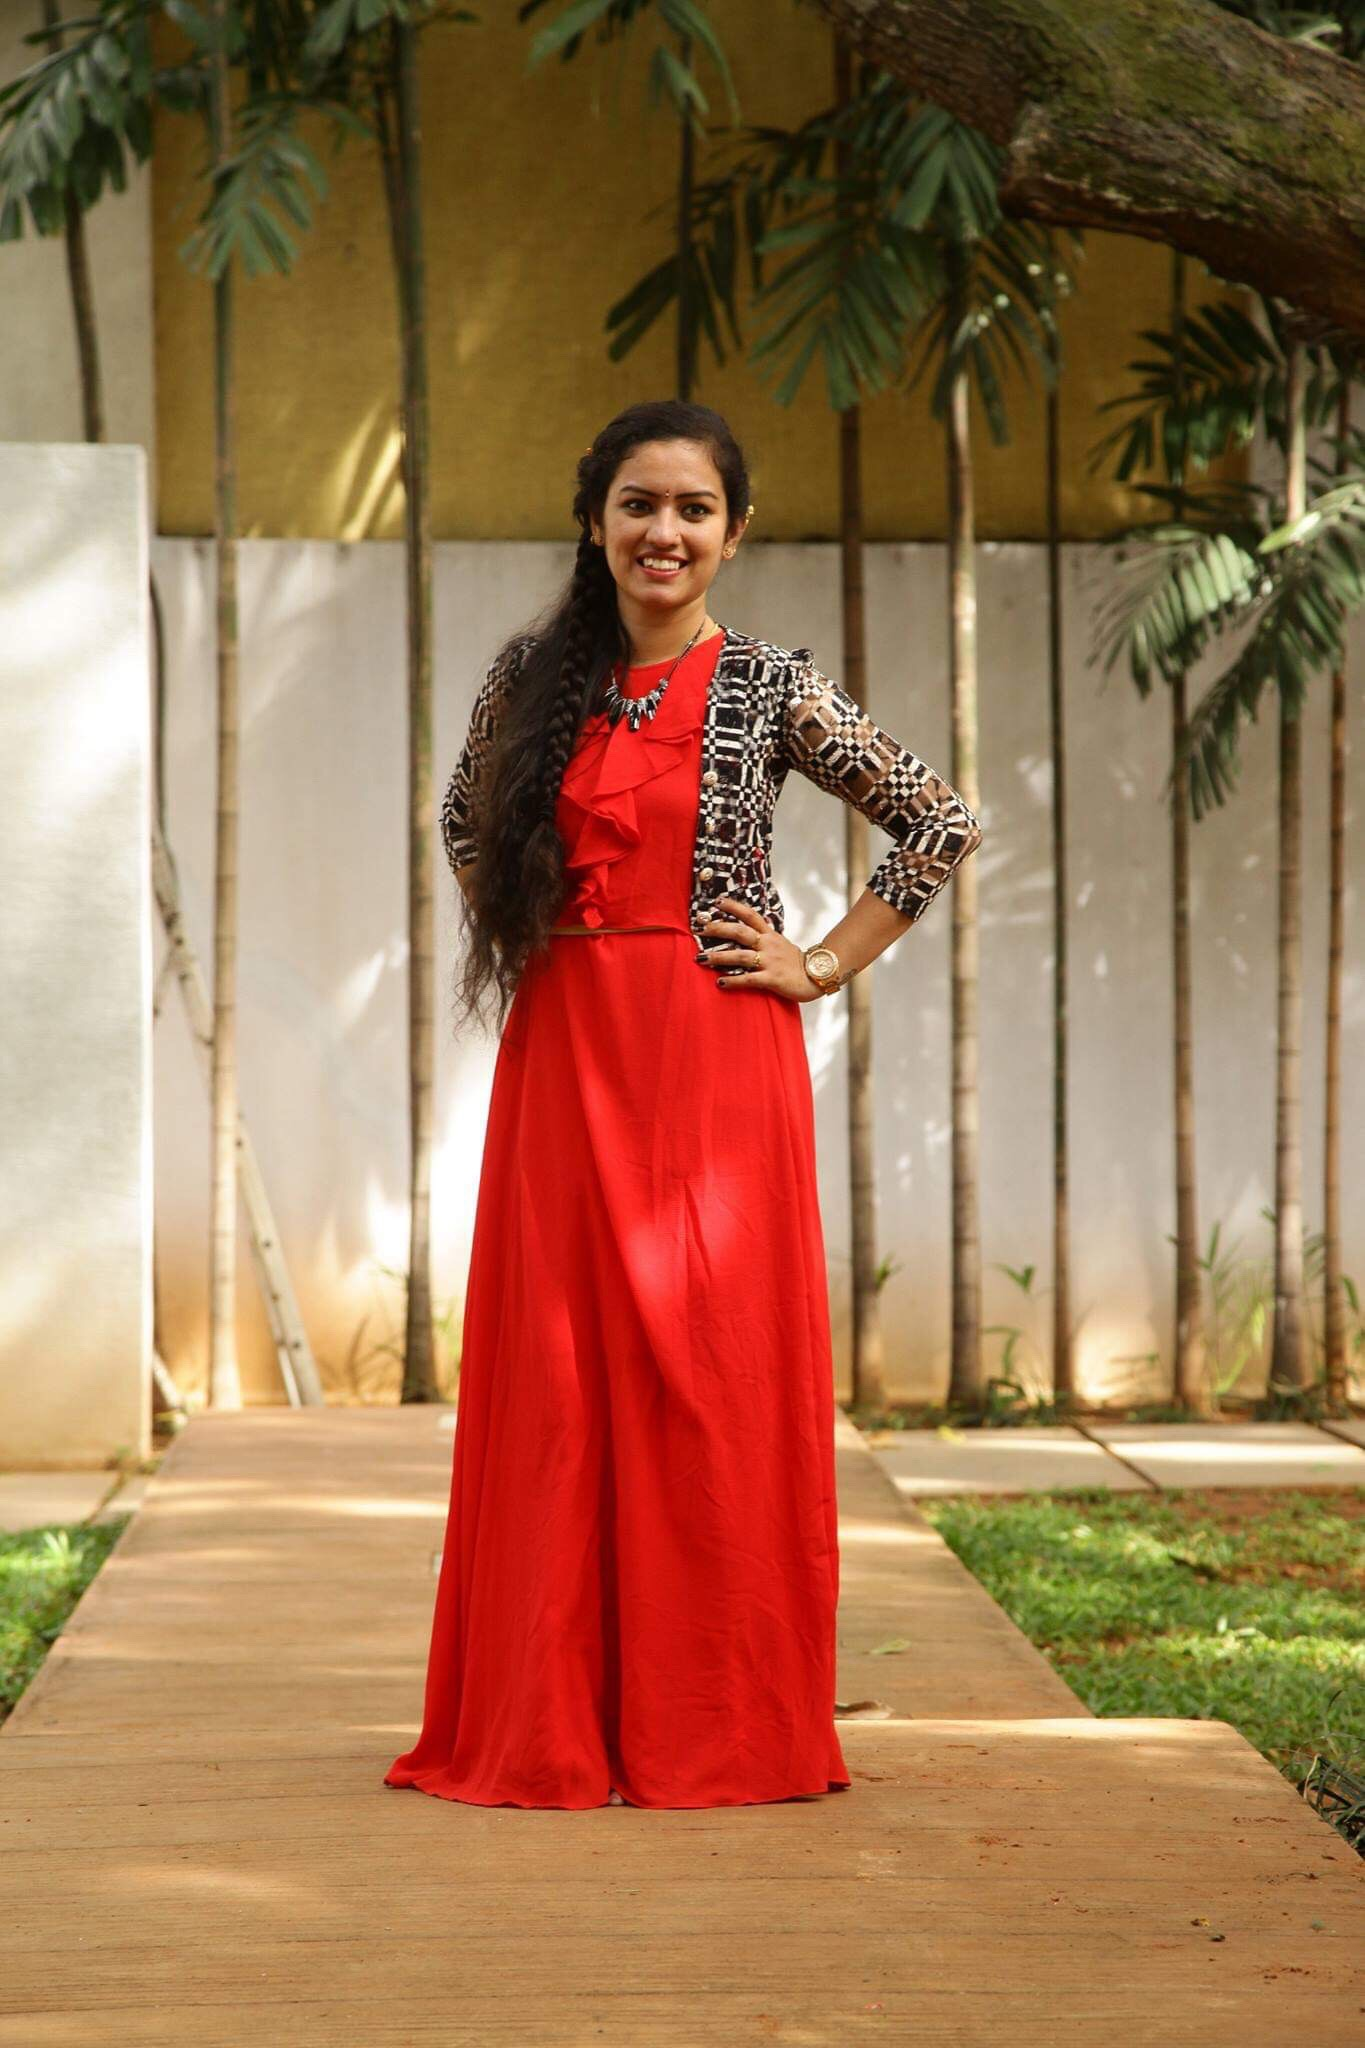 Miestilo Designer Studio By Shwetha From Bangalore Fashion